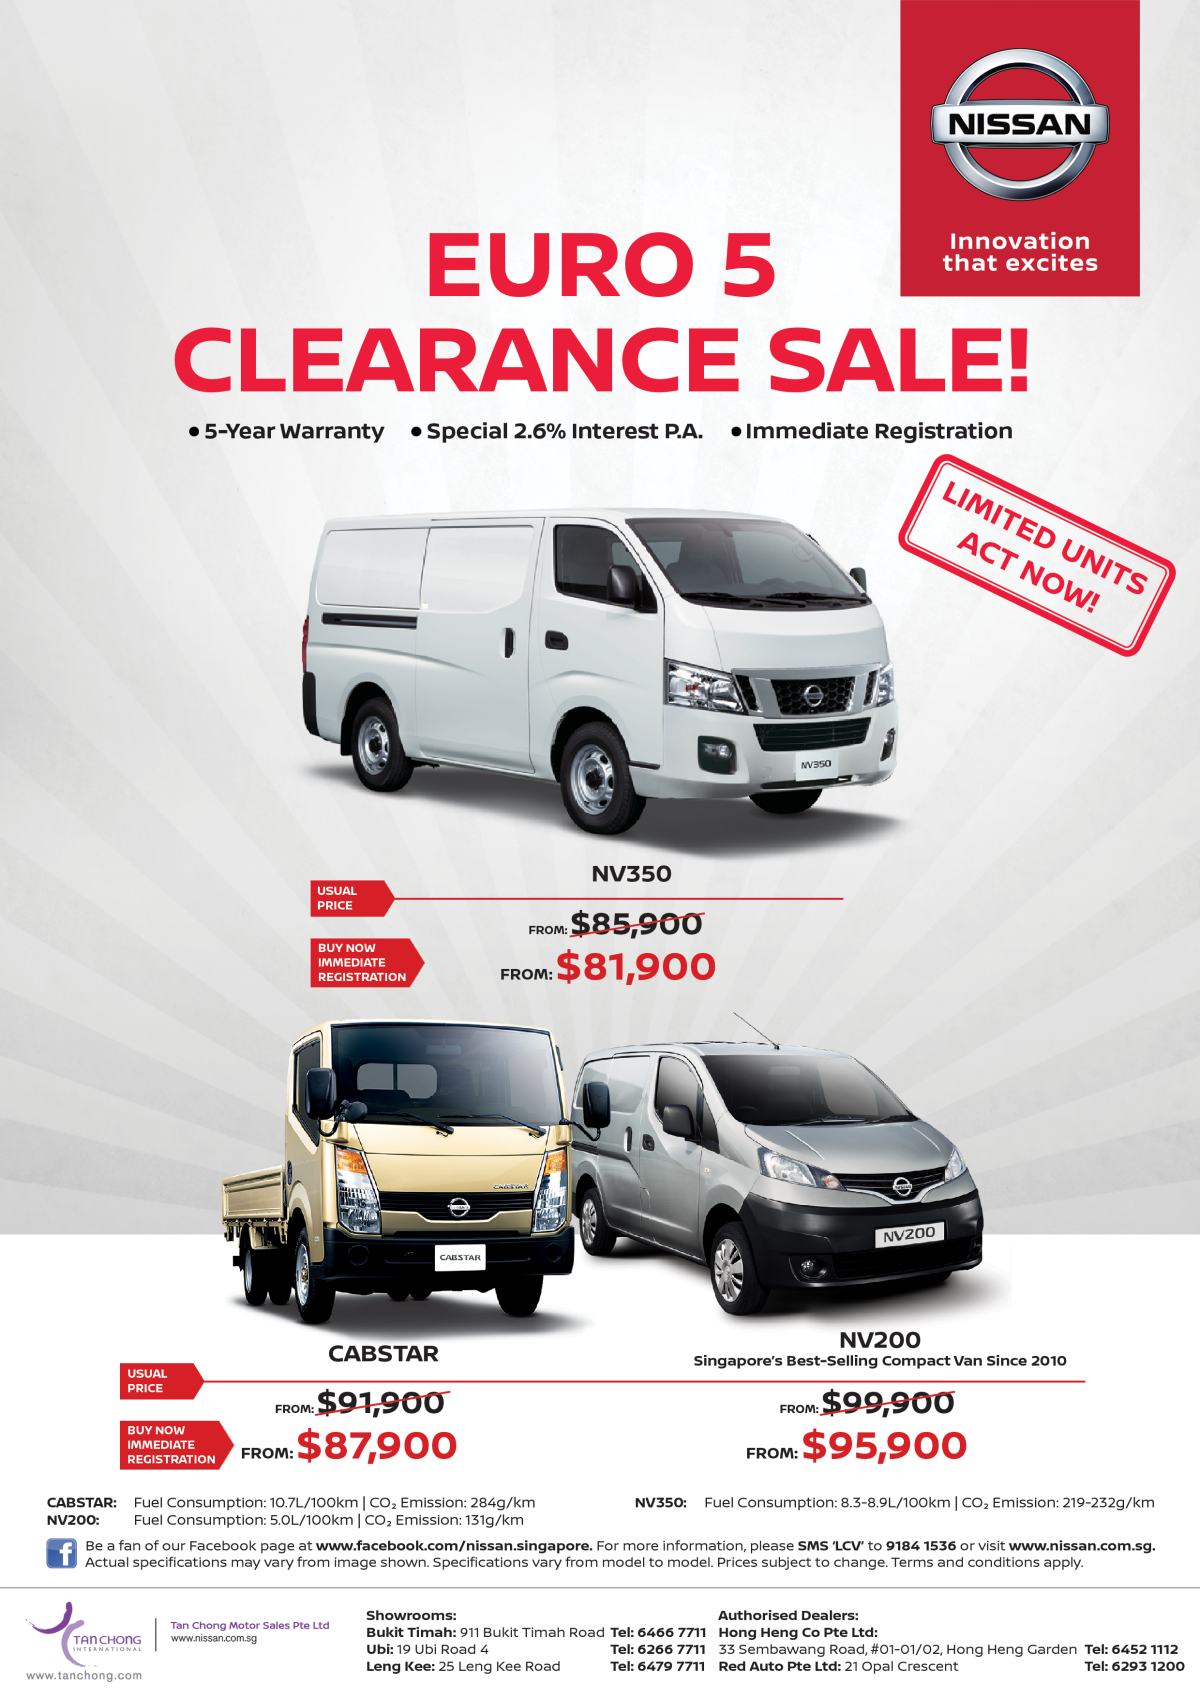 Euro 5 Clearance Sale, price starting from $81,900!